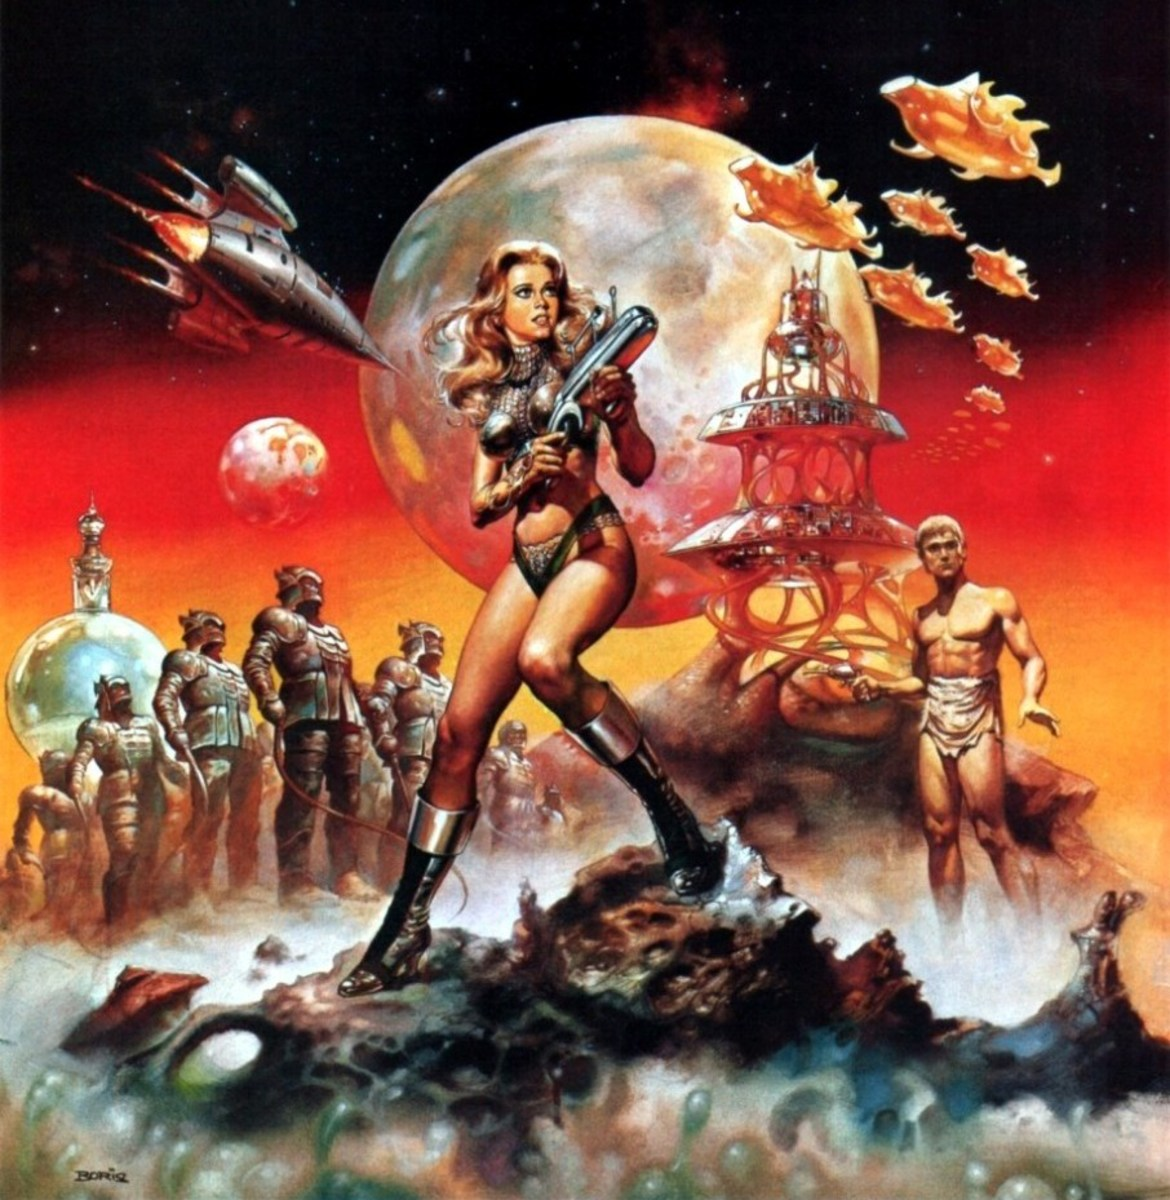 Barbarella - art by Boris Vallejo